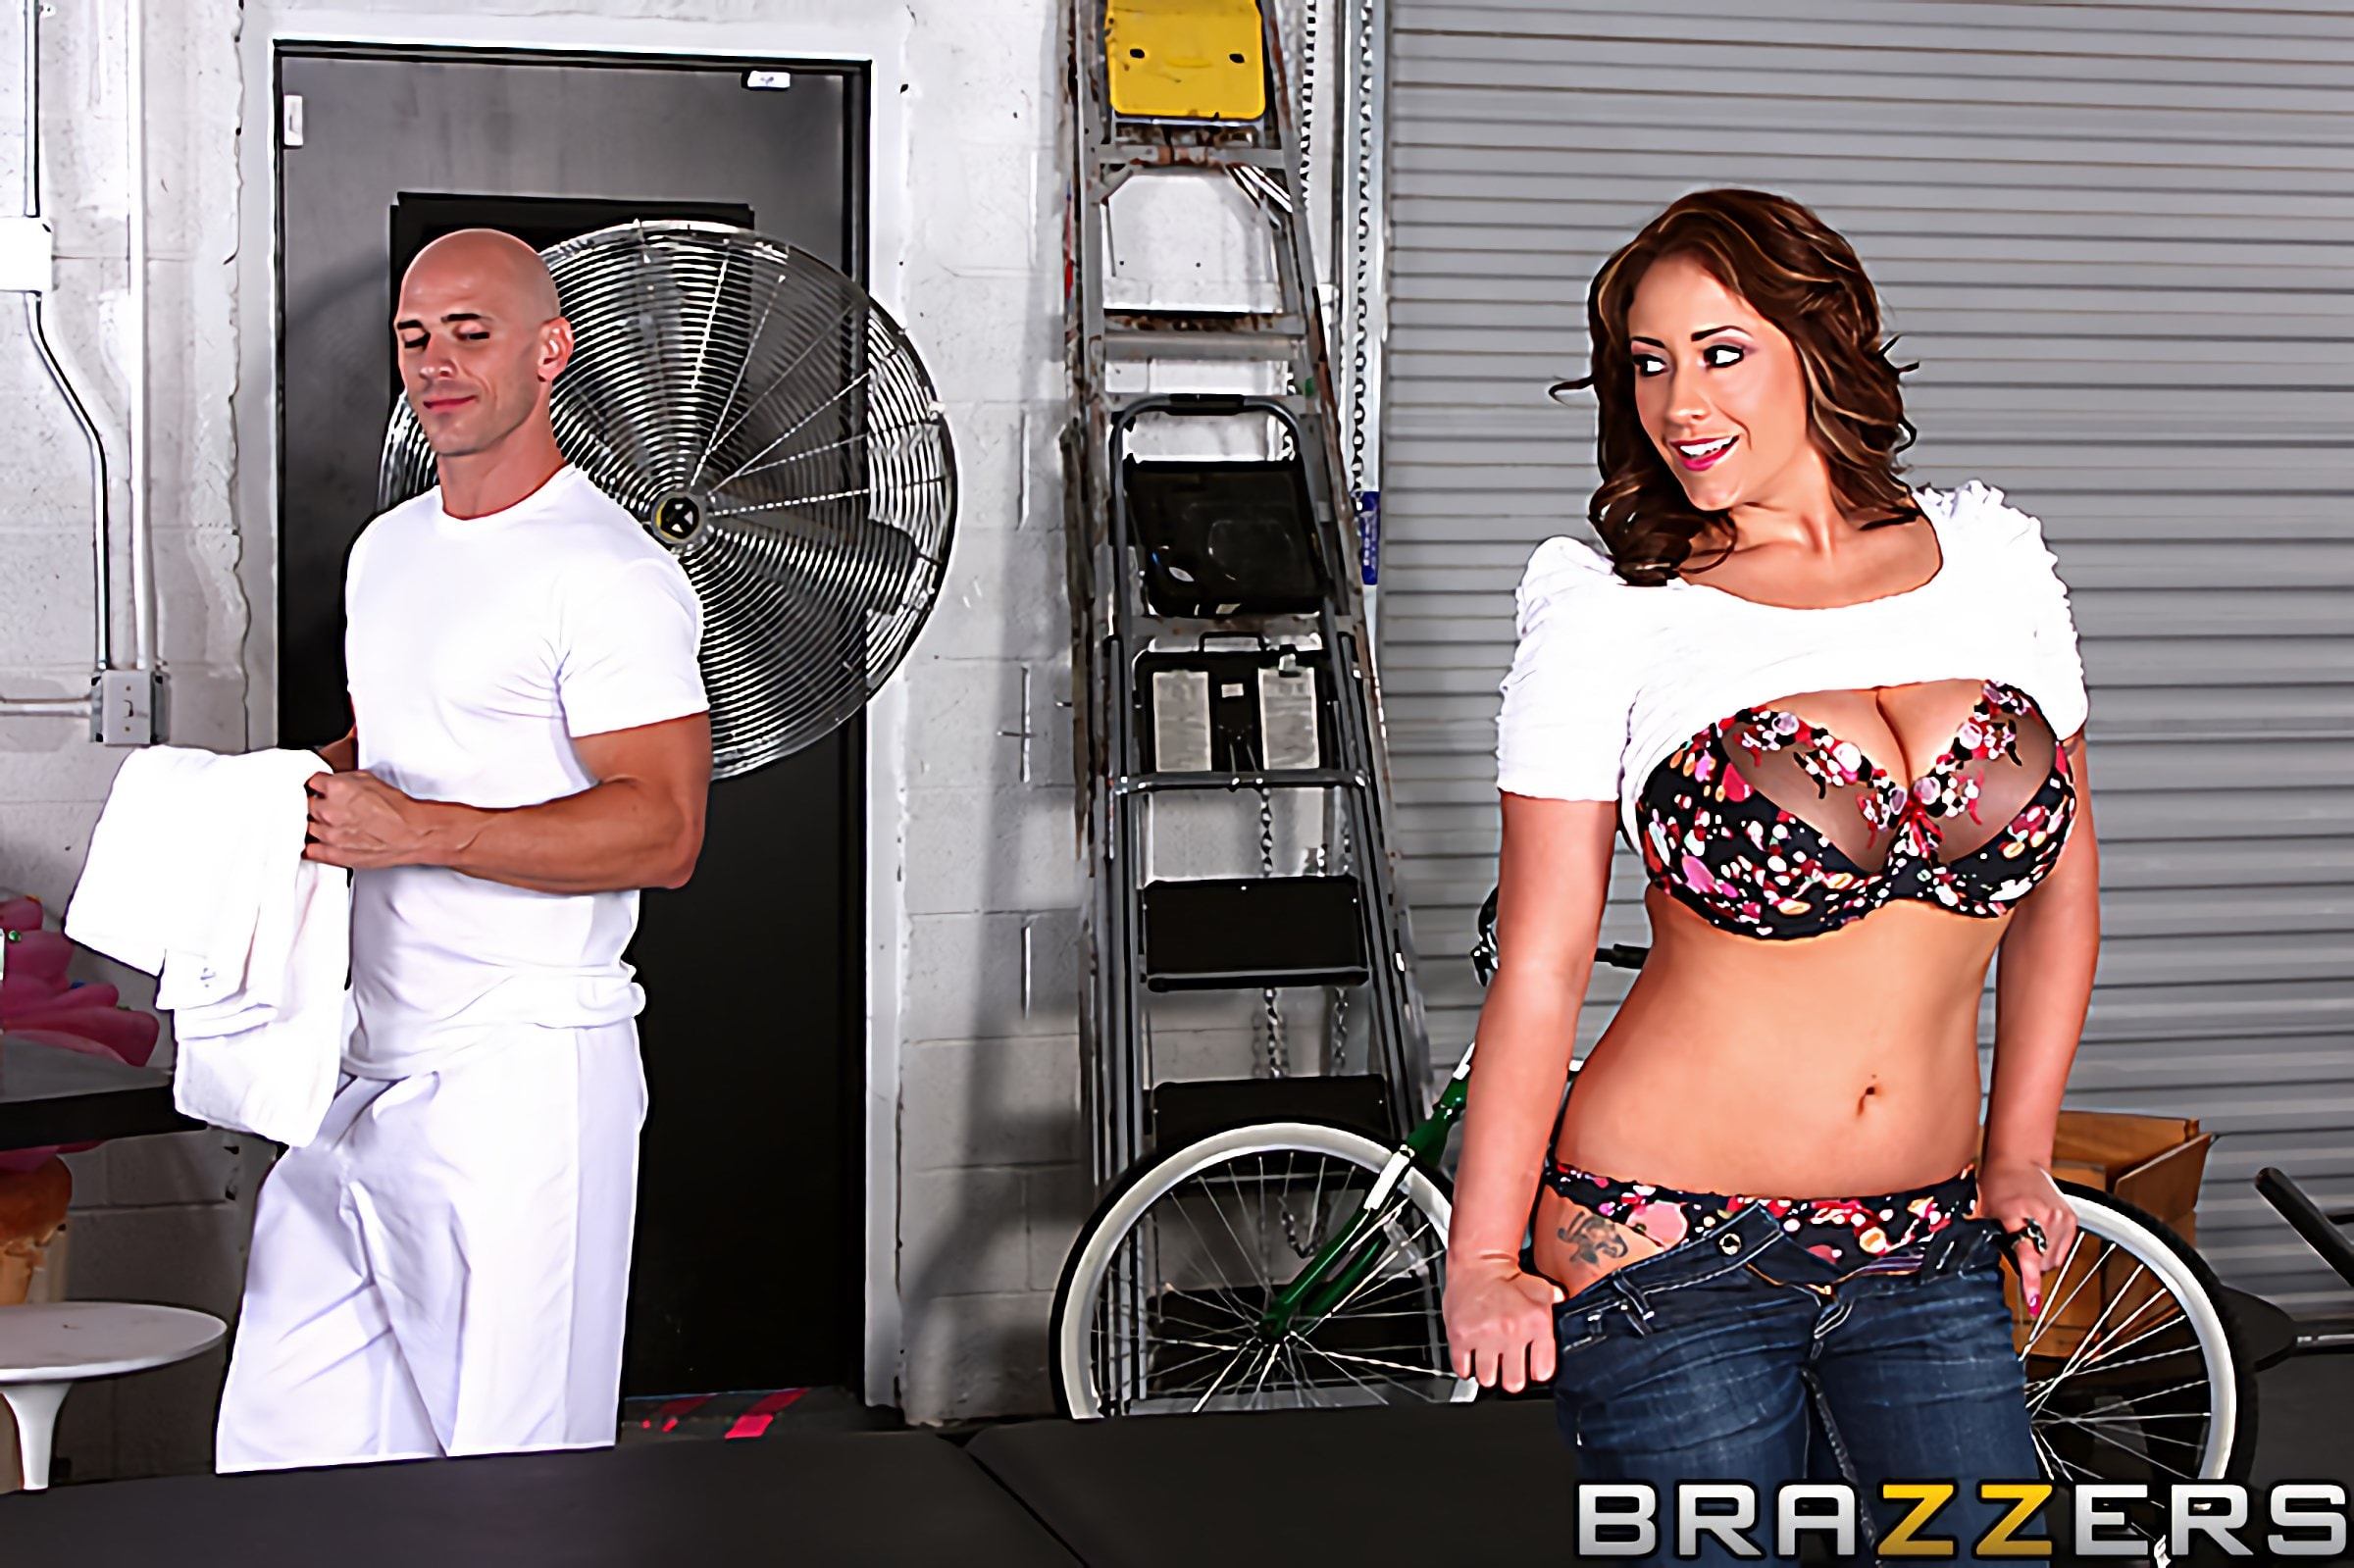 Brazzers 'Huge Tits on the Receptionist' starring Eva Notty (photo 1)